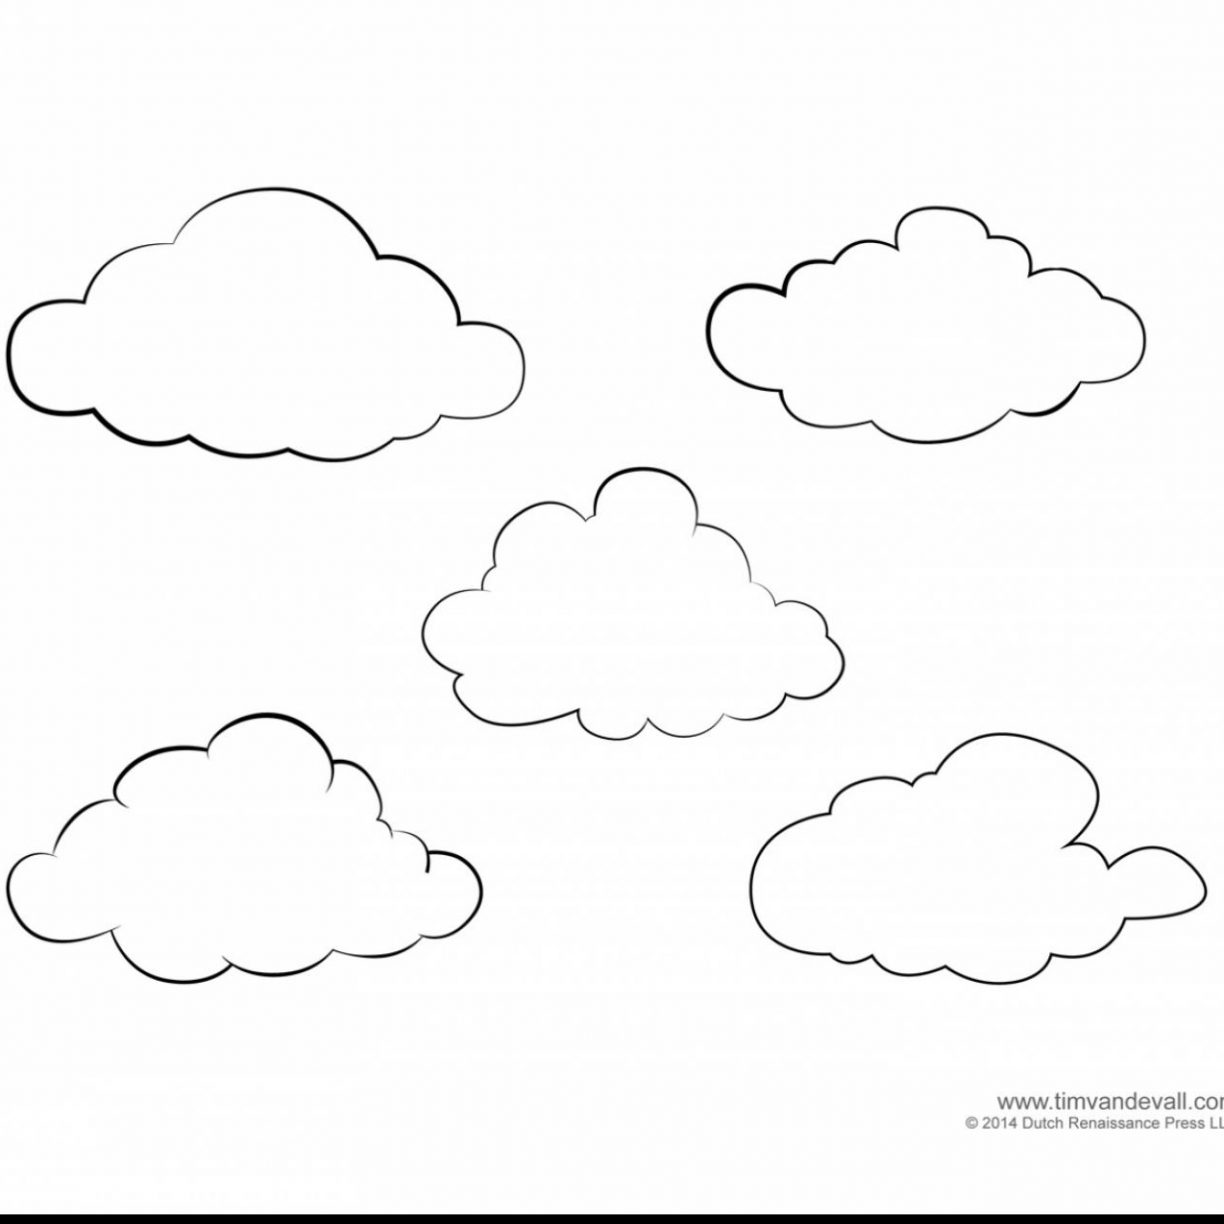 Rain Clouds Drawing at GetDrawings.com | Free for personal use Rain ...